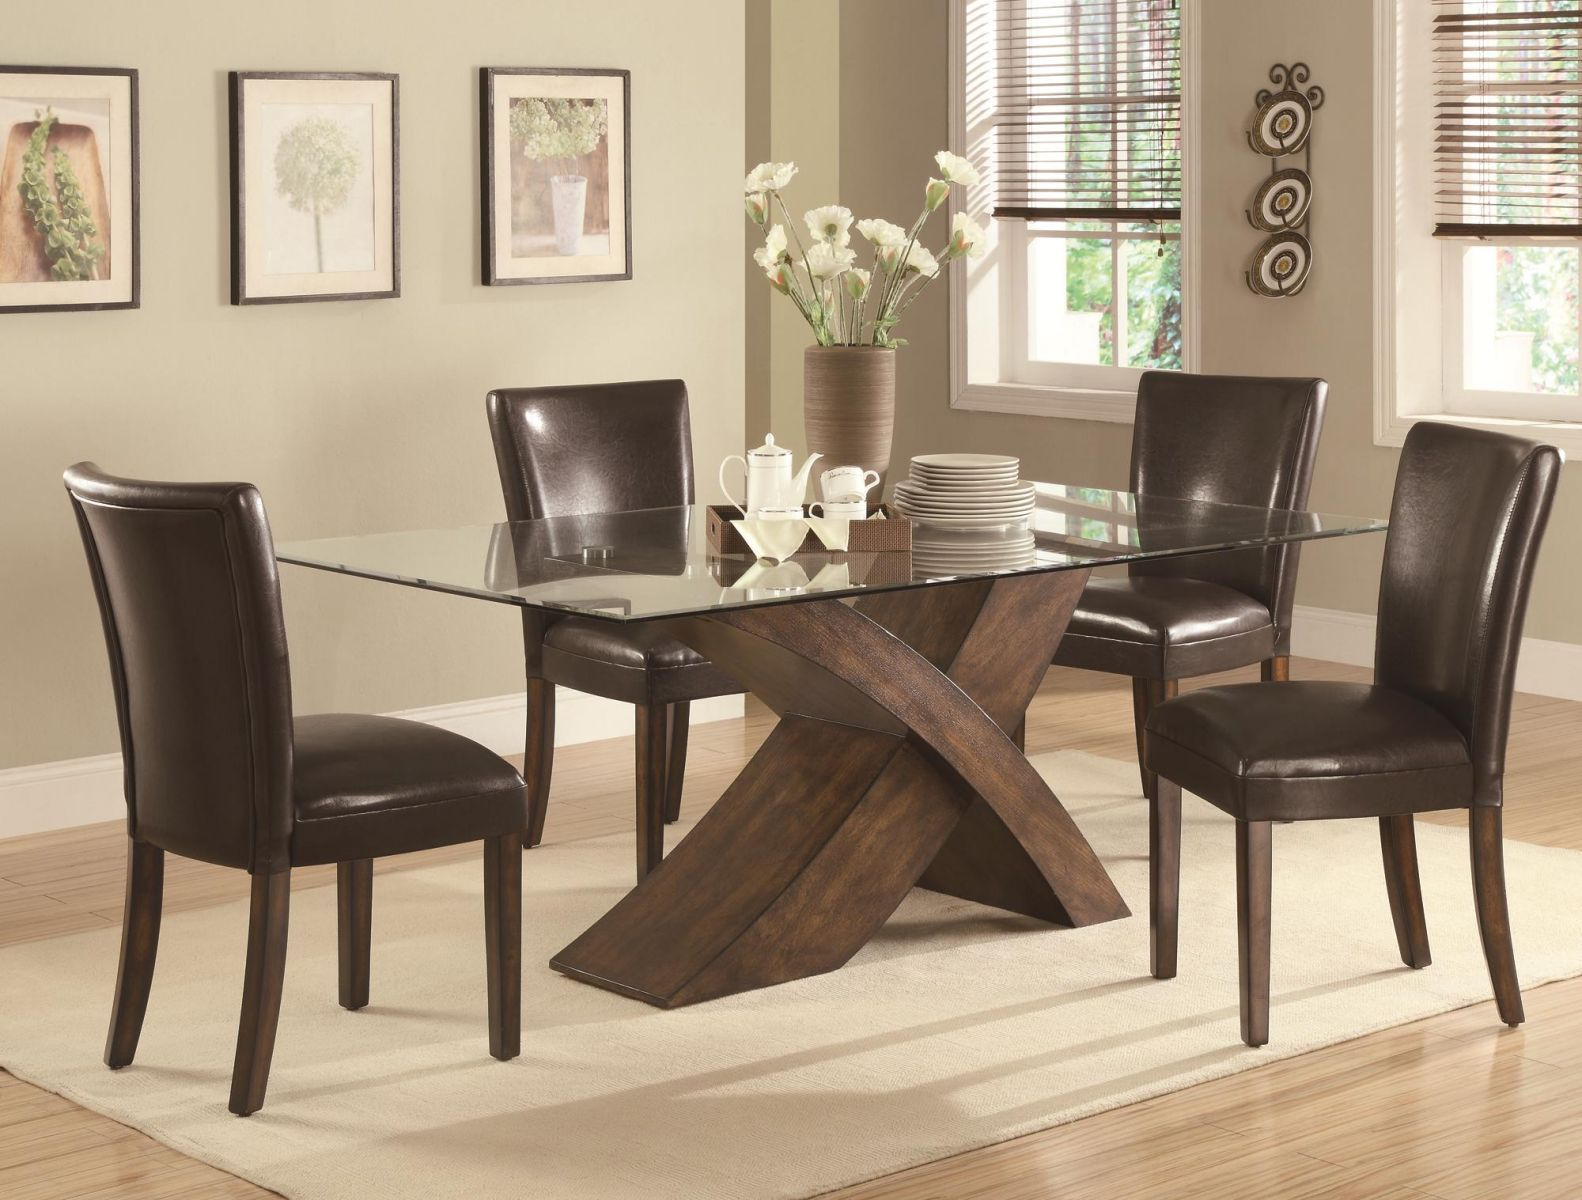 Coaster Dining Room Set Price Upon Request Call (631) 742-1351 for Best Price Guarantee The Nessa dining collection features a large scaled X base dining table and chair set that will make a bold statement in your dining room. Crafted from ash veneers and